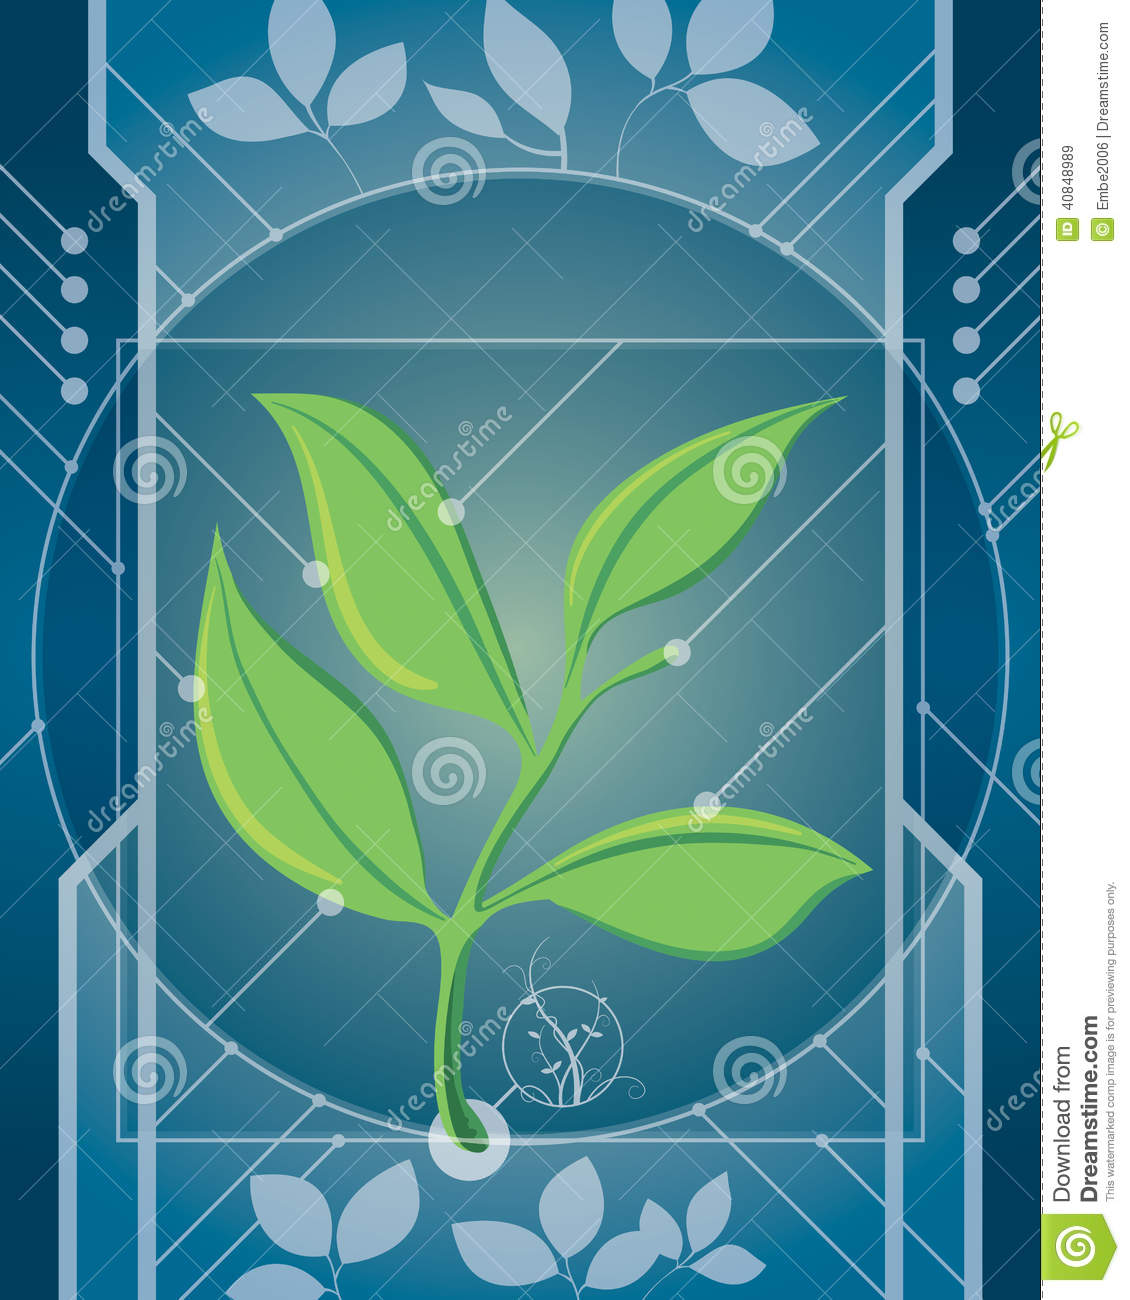 Science And Nature Stock Vector - Image ...